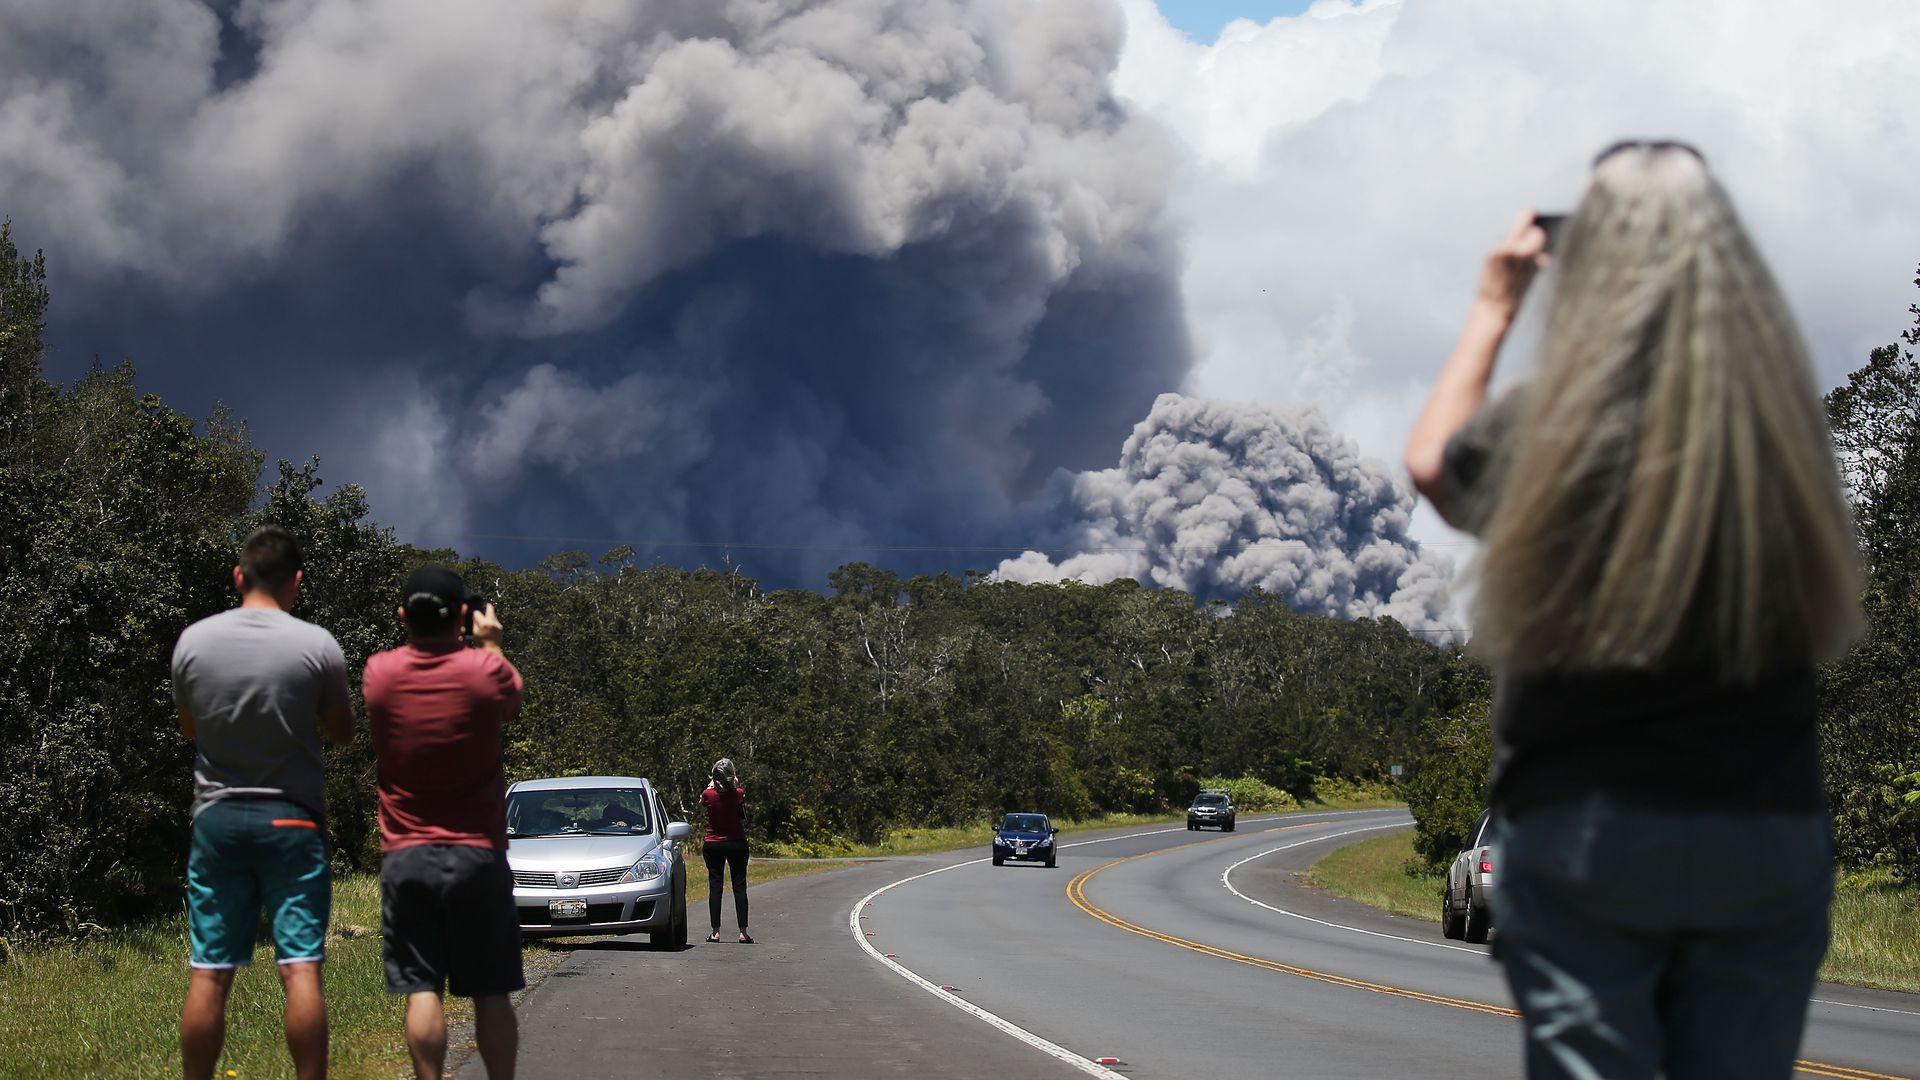 VOLCANO, HI - MAY 15: An ash plume rises from the Kilauea volcano on Hawaii's Big Island on May 15.